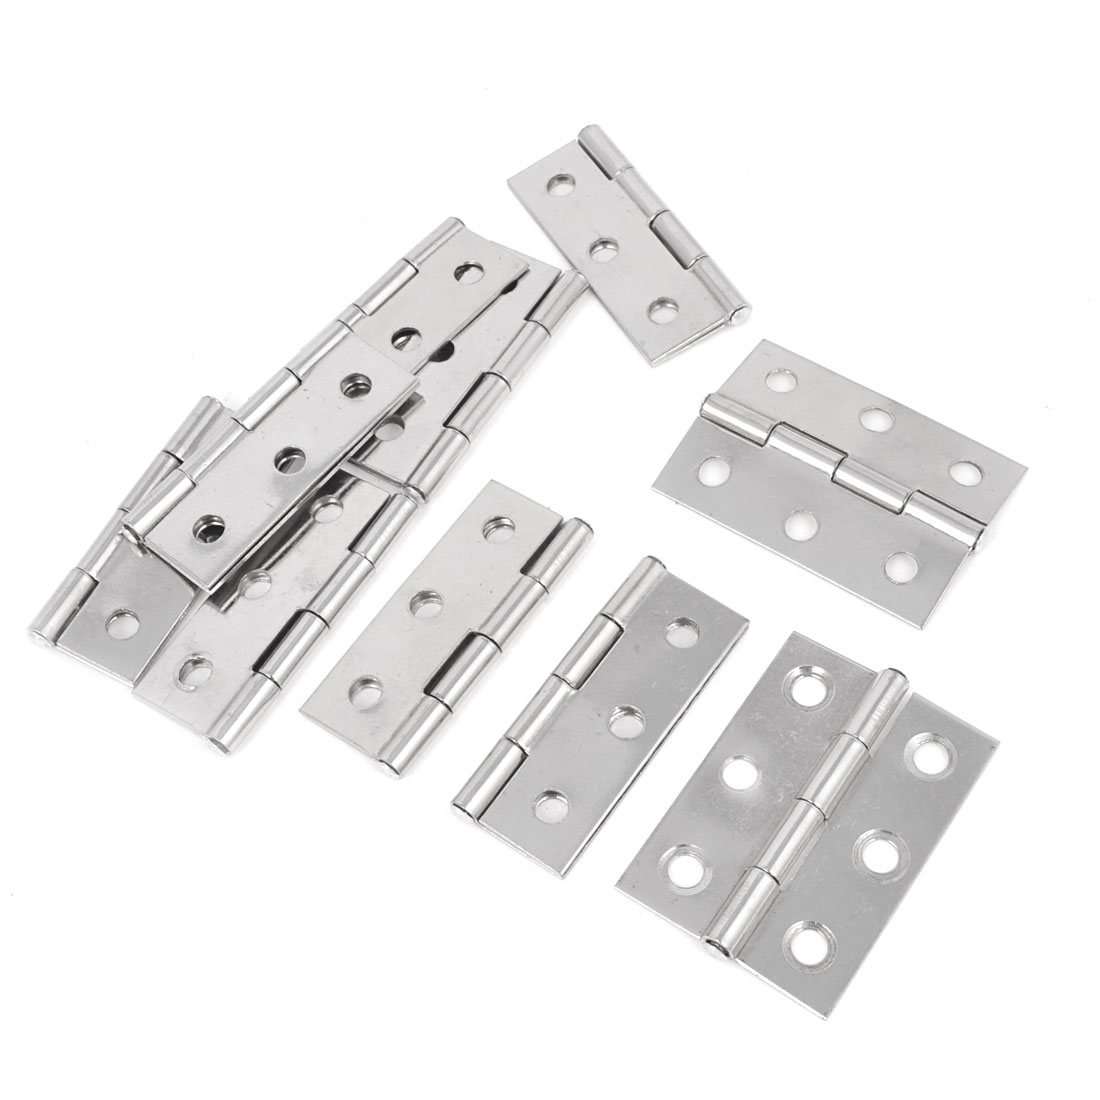 Home Door Cabinet Cupboard Mounted Silver Tone Butt Hinges 44mm 10 Pcs